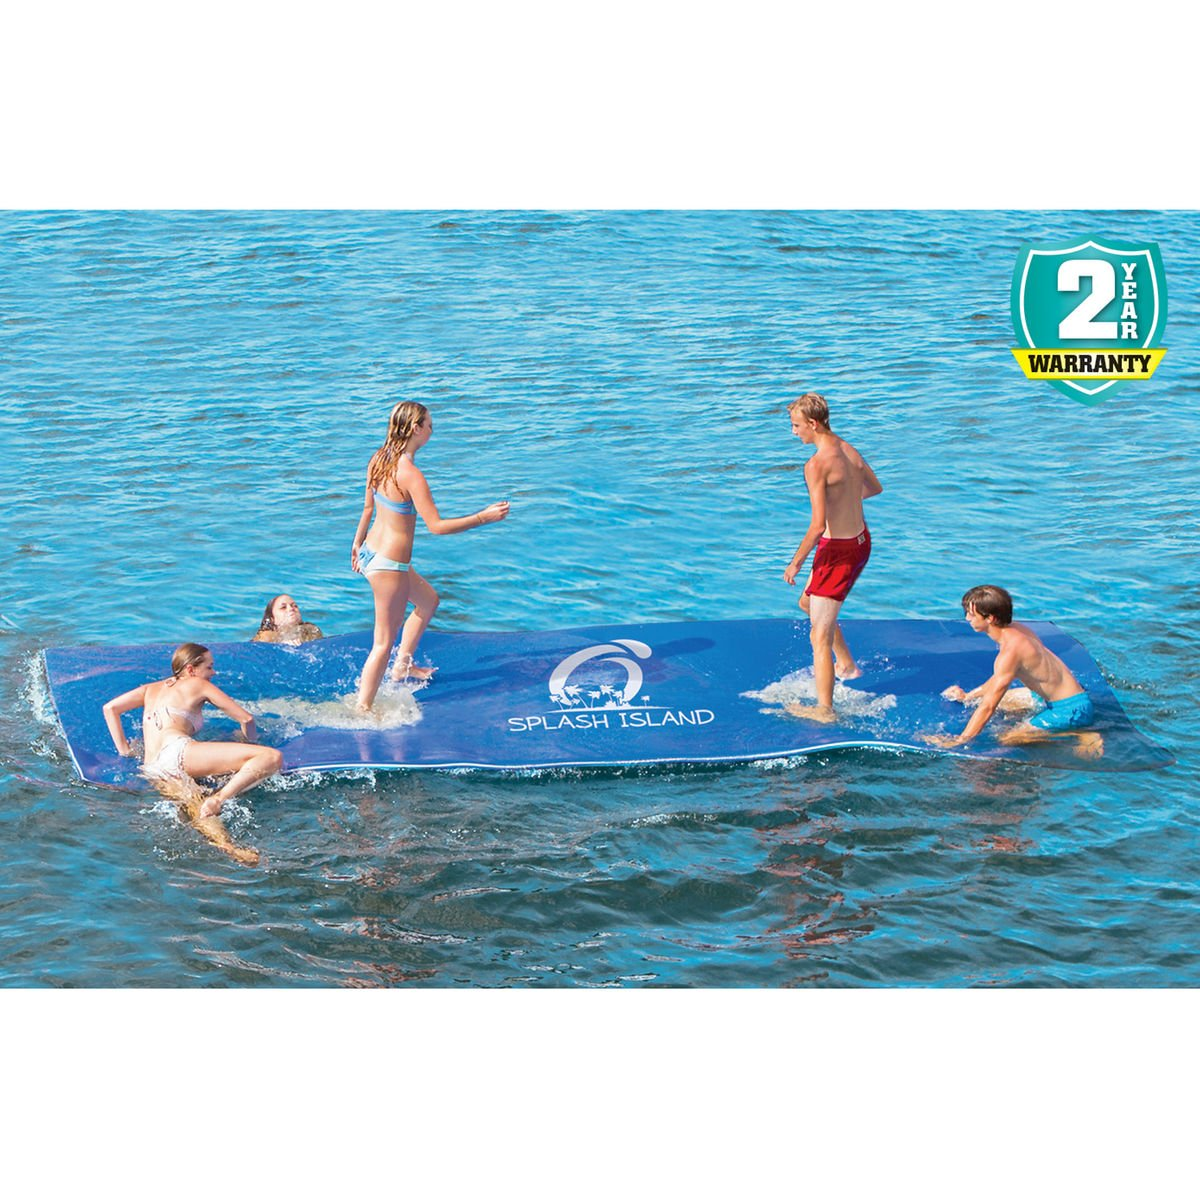 Experience the Best Summer Water Adventure with Overton's Splash Island, 18'L x 6'W by Overtons